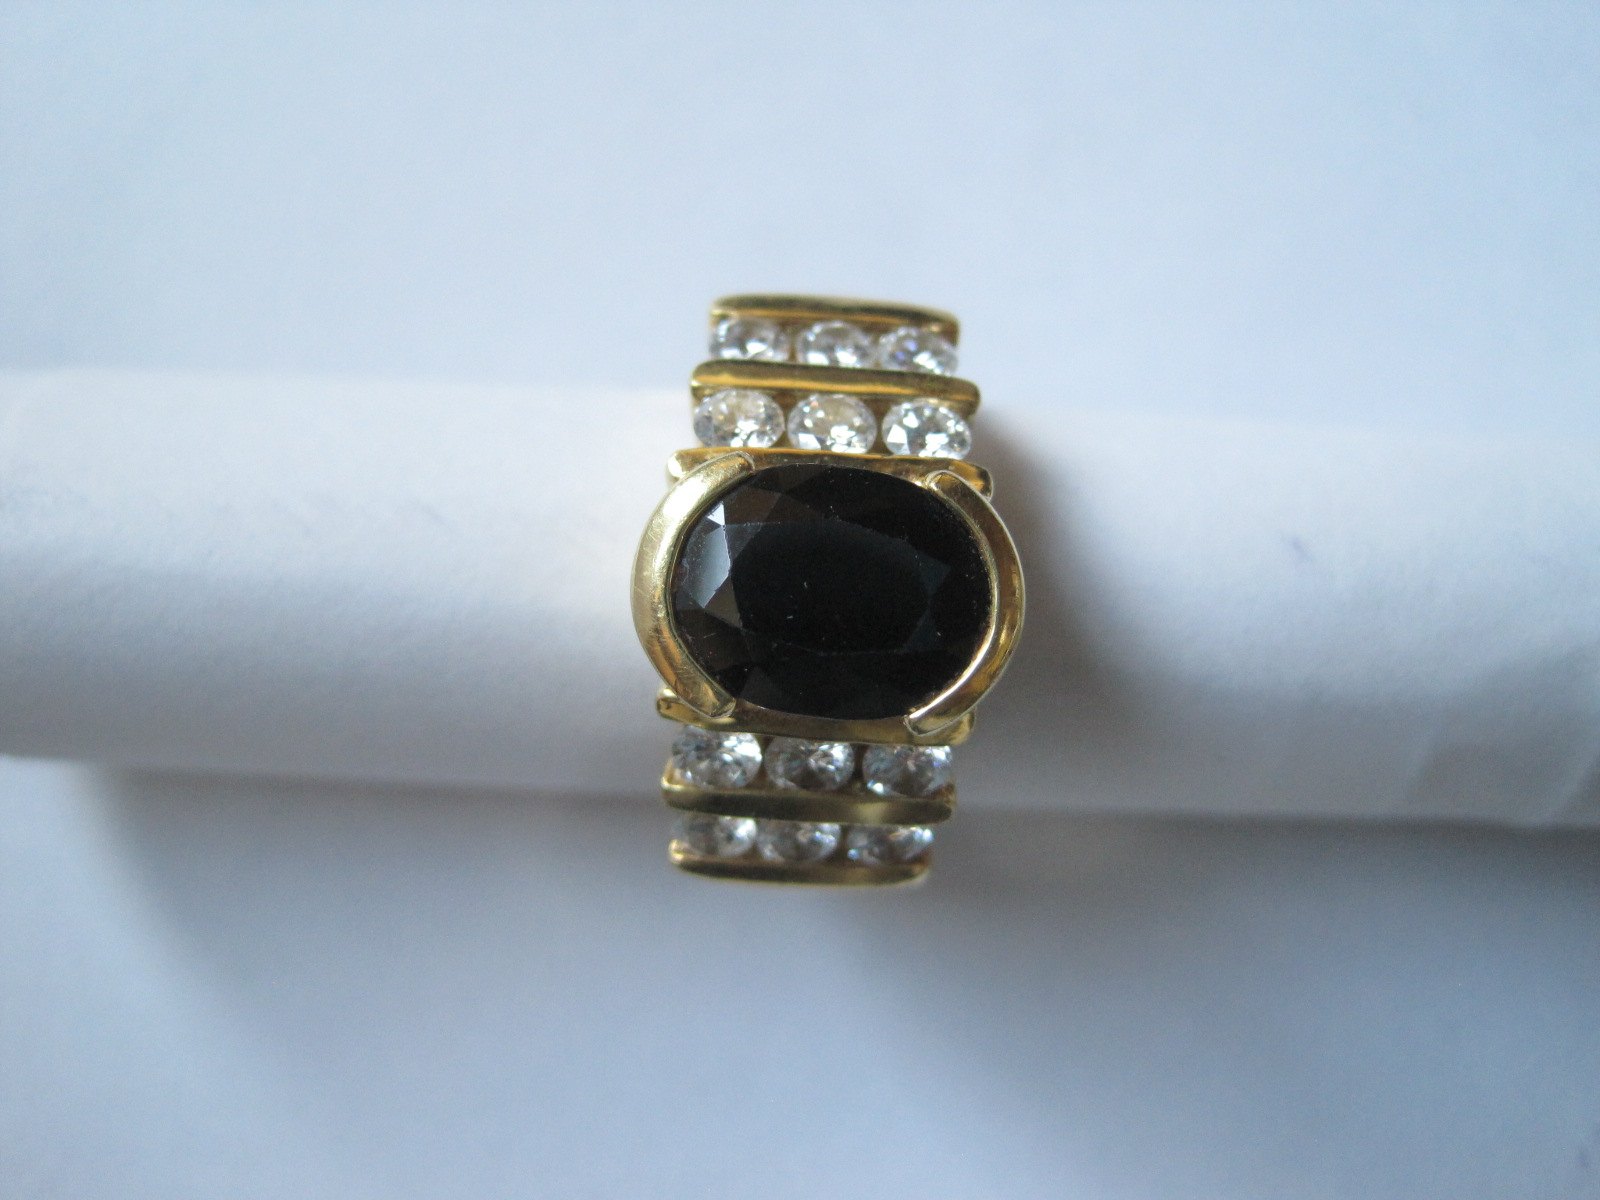 Lot 48 - Yellow gold ring set with a sapphire (9.7 x 7.5 cm approximately 3.5-4 ct) oval [...]